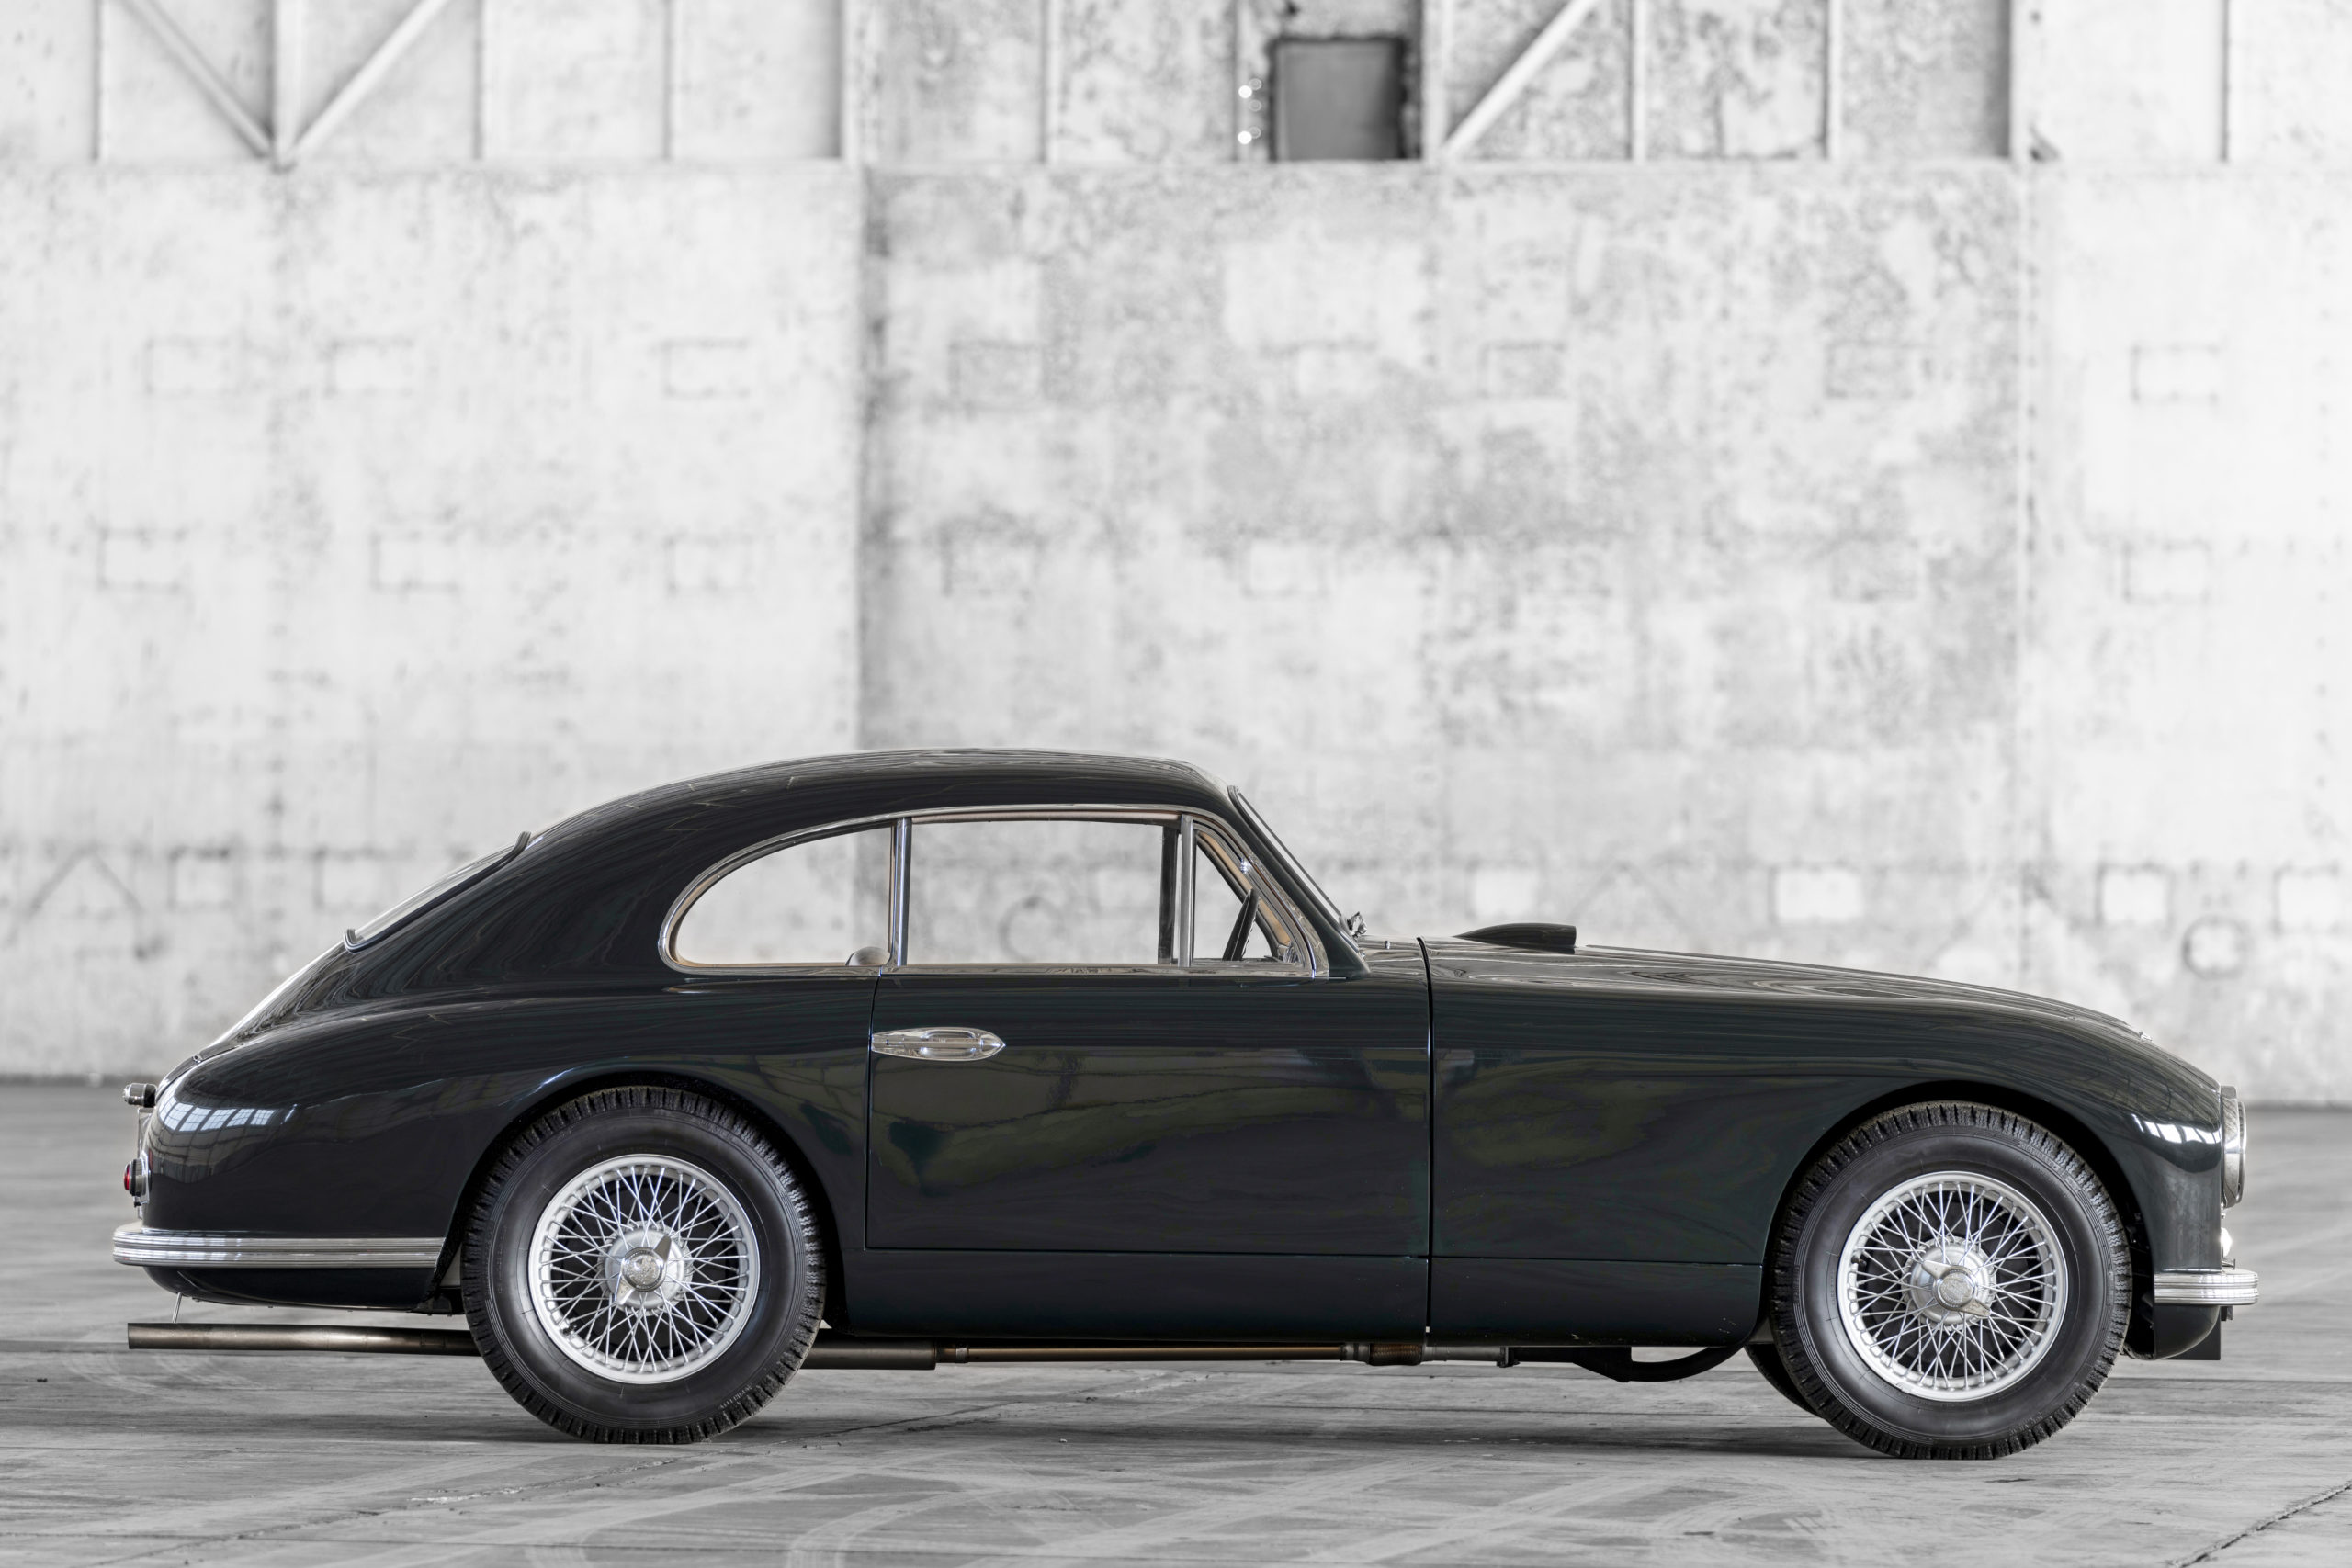 Aston Martin DB2 with Vantage specification